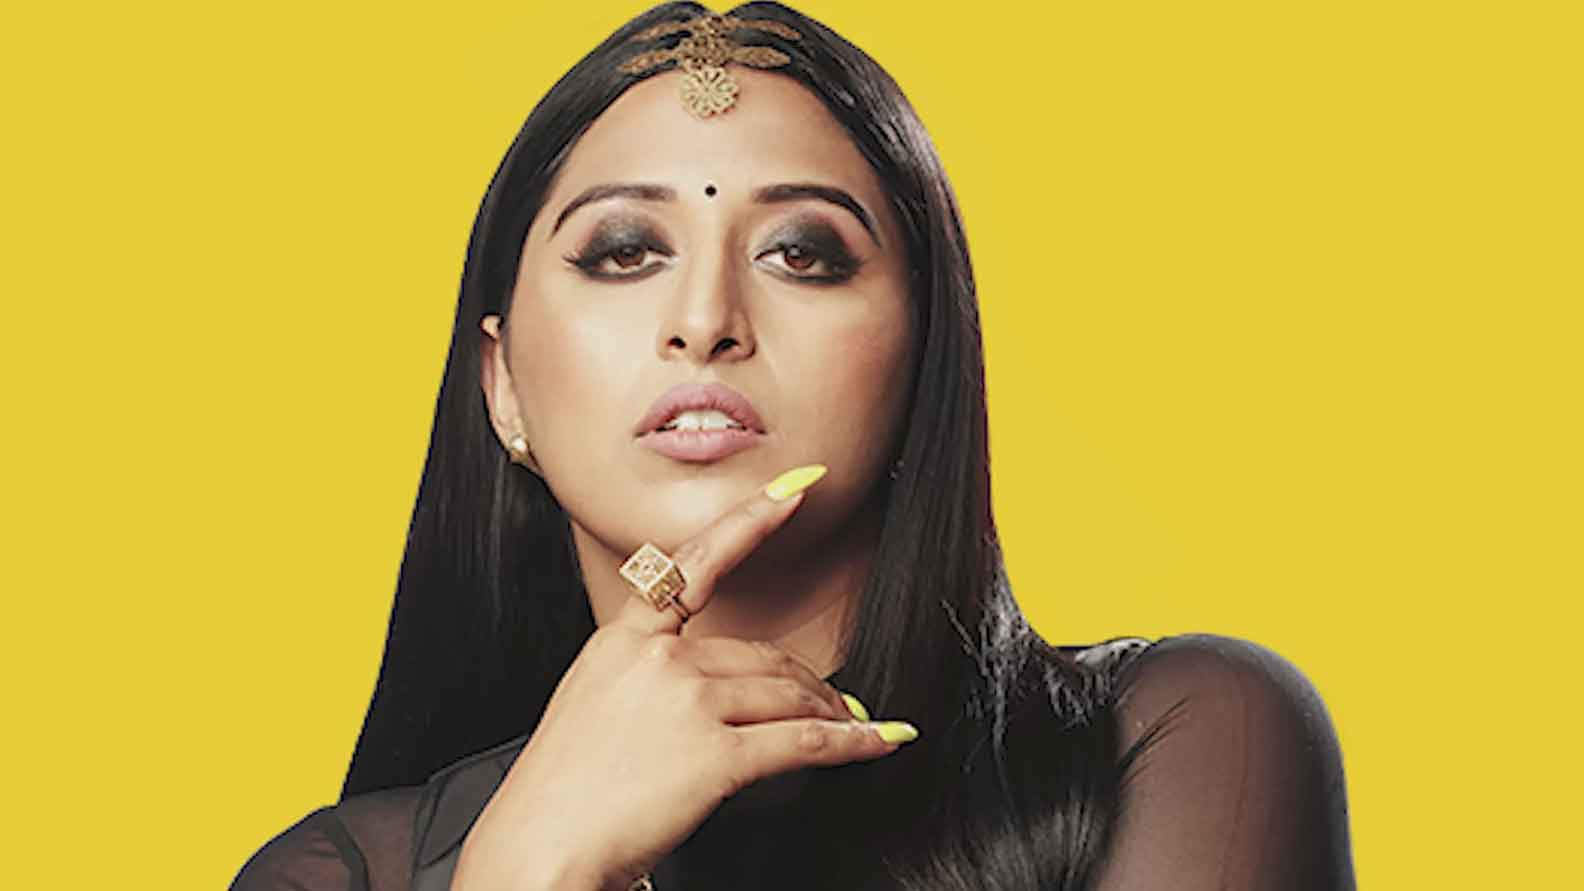 Songwriter Raja Kumari aims at unearthing real hip-hop talent with reality  show, 'Hustle'